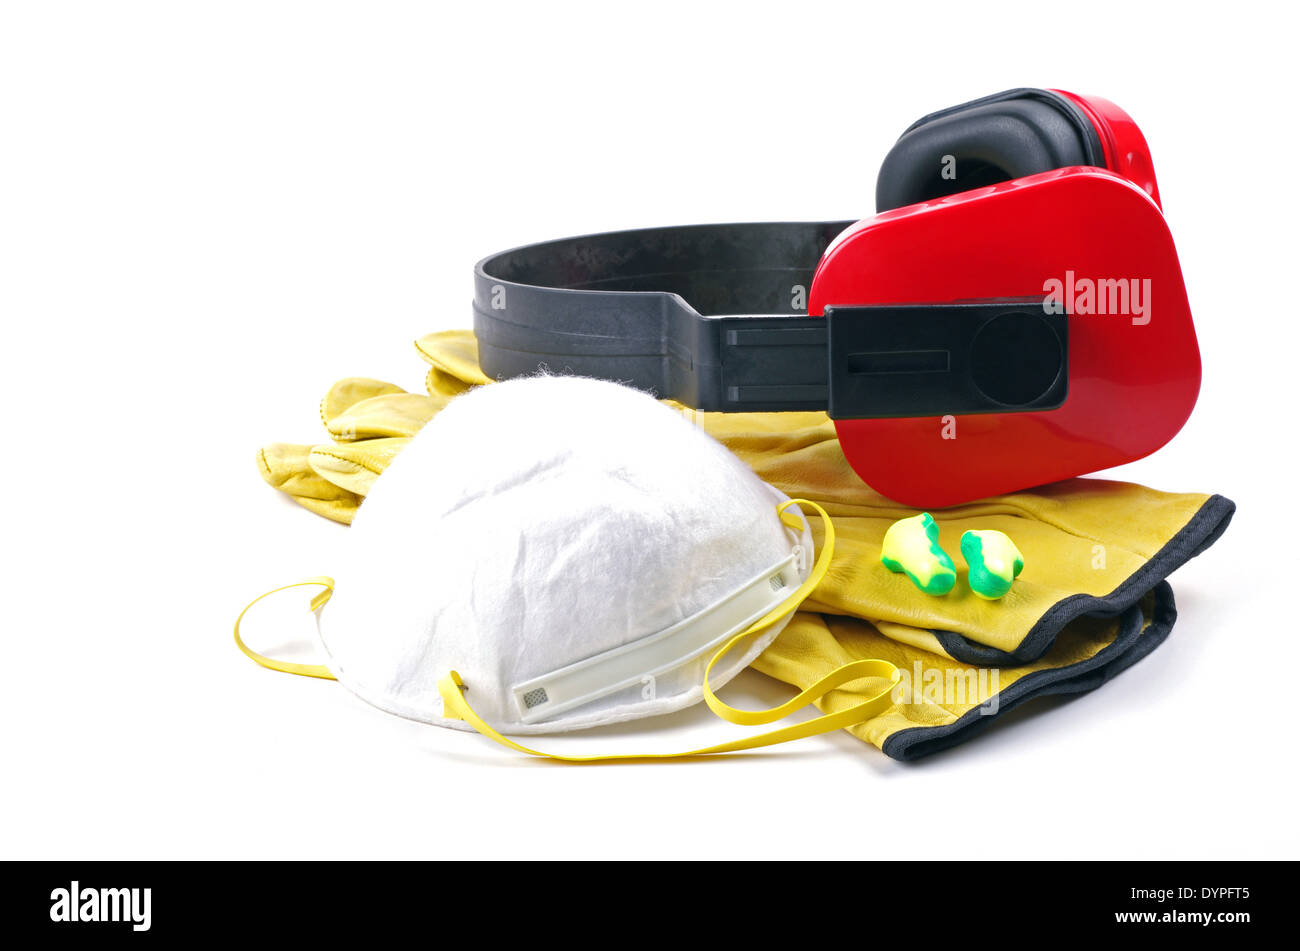 personal safety gear - Stock Image